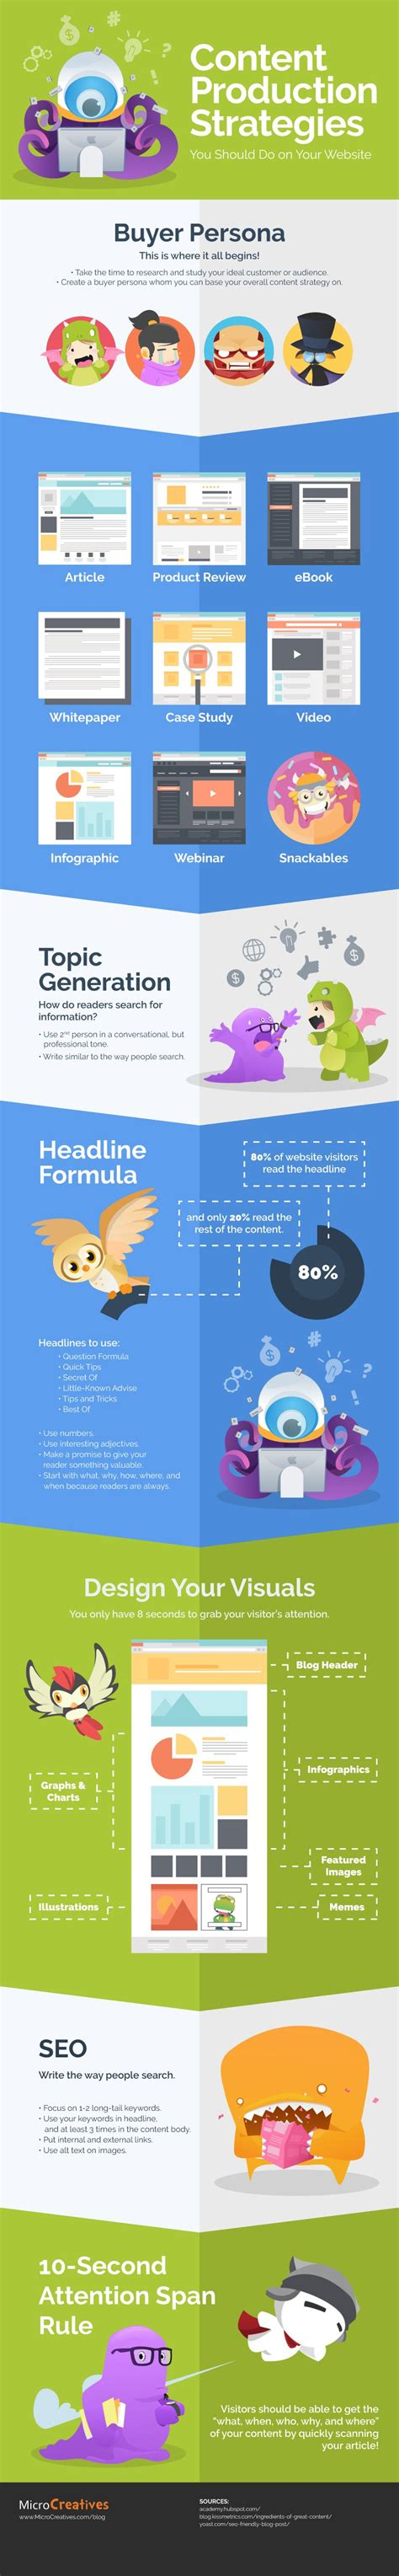 blog themes uk 9 blog content ideas infographic